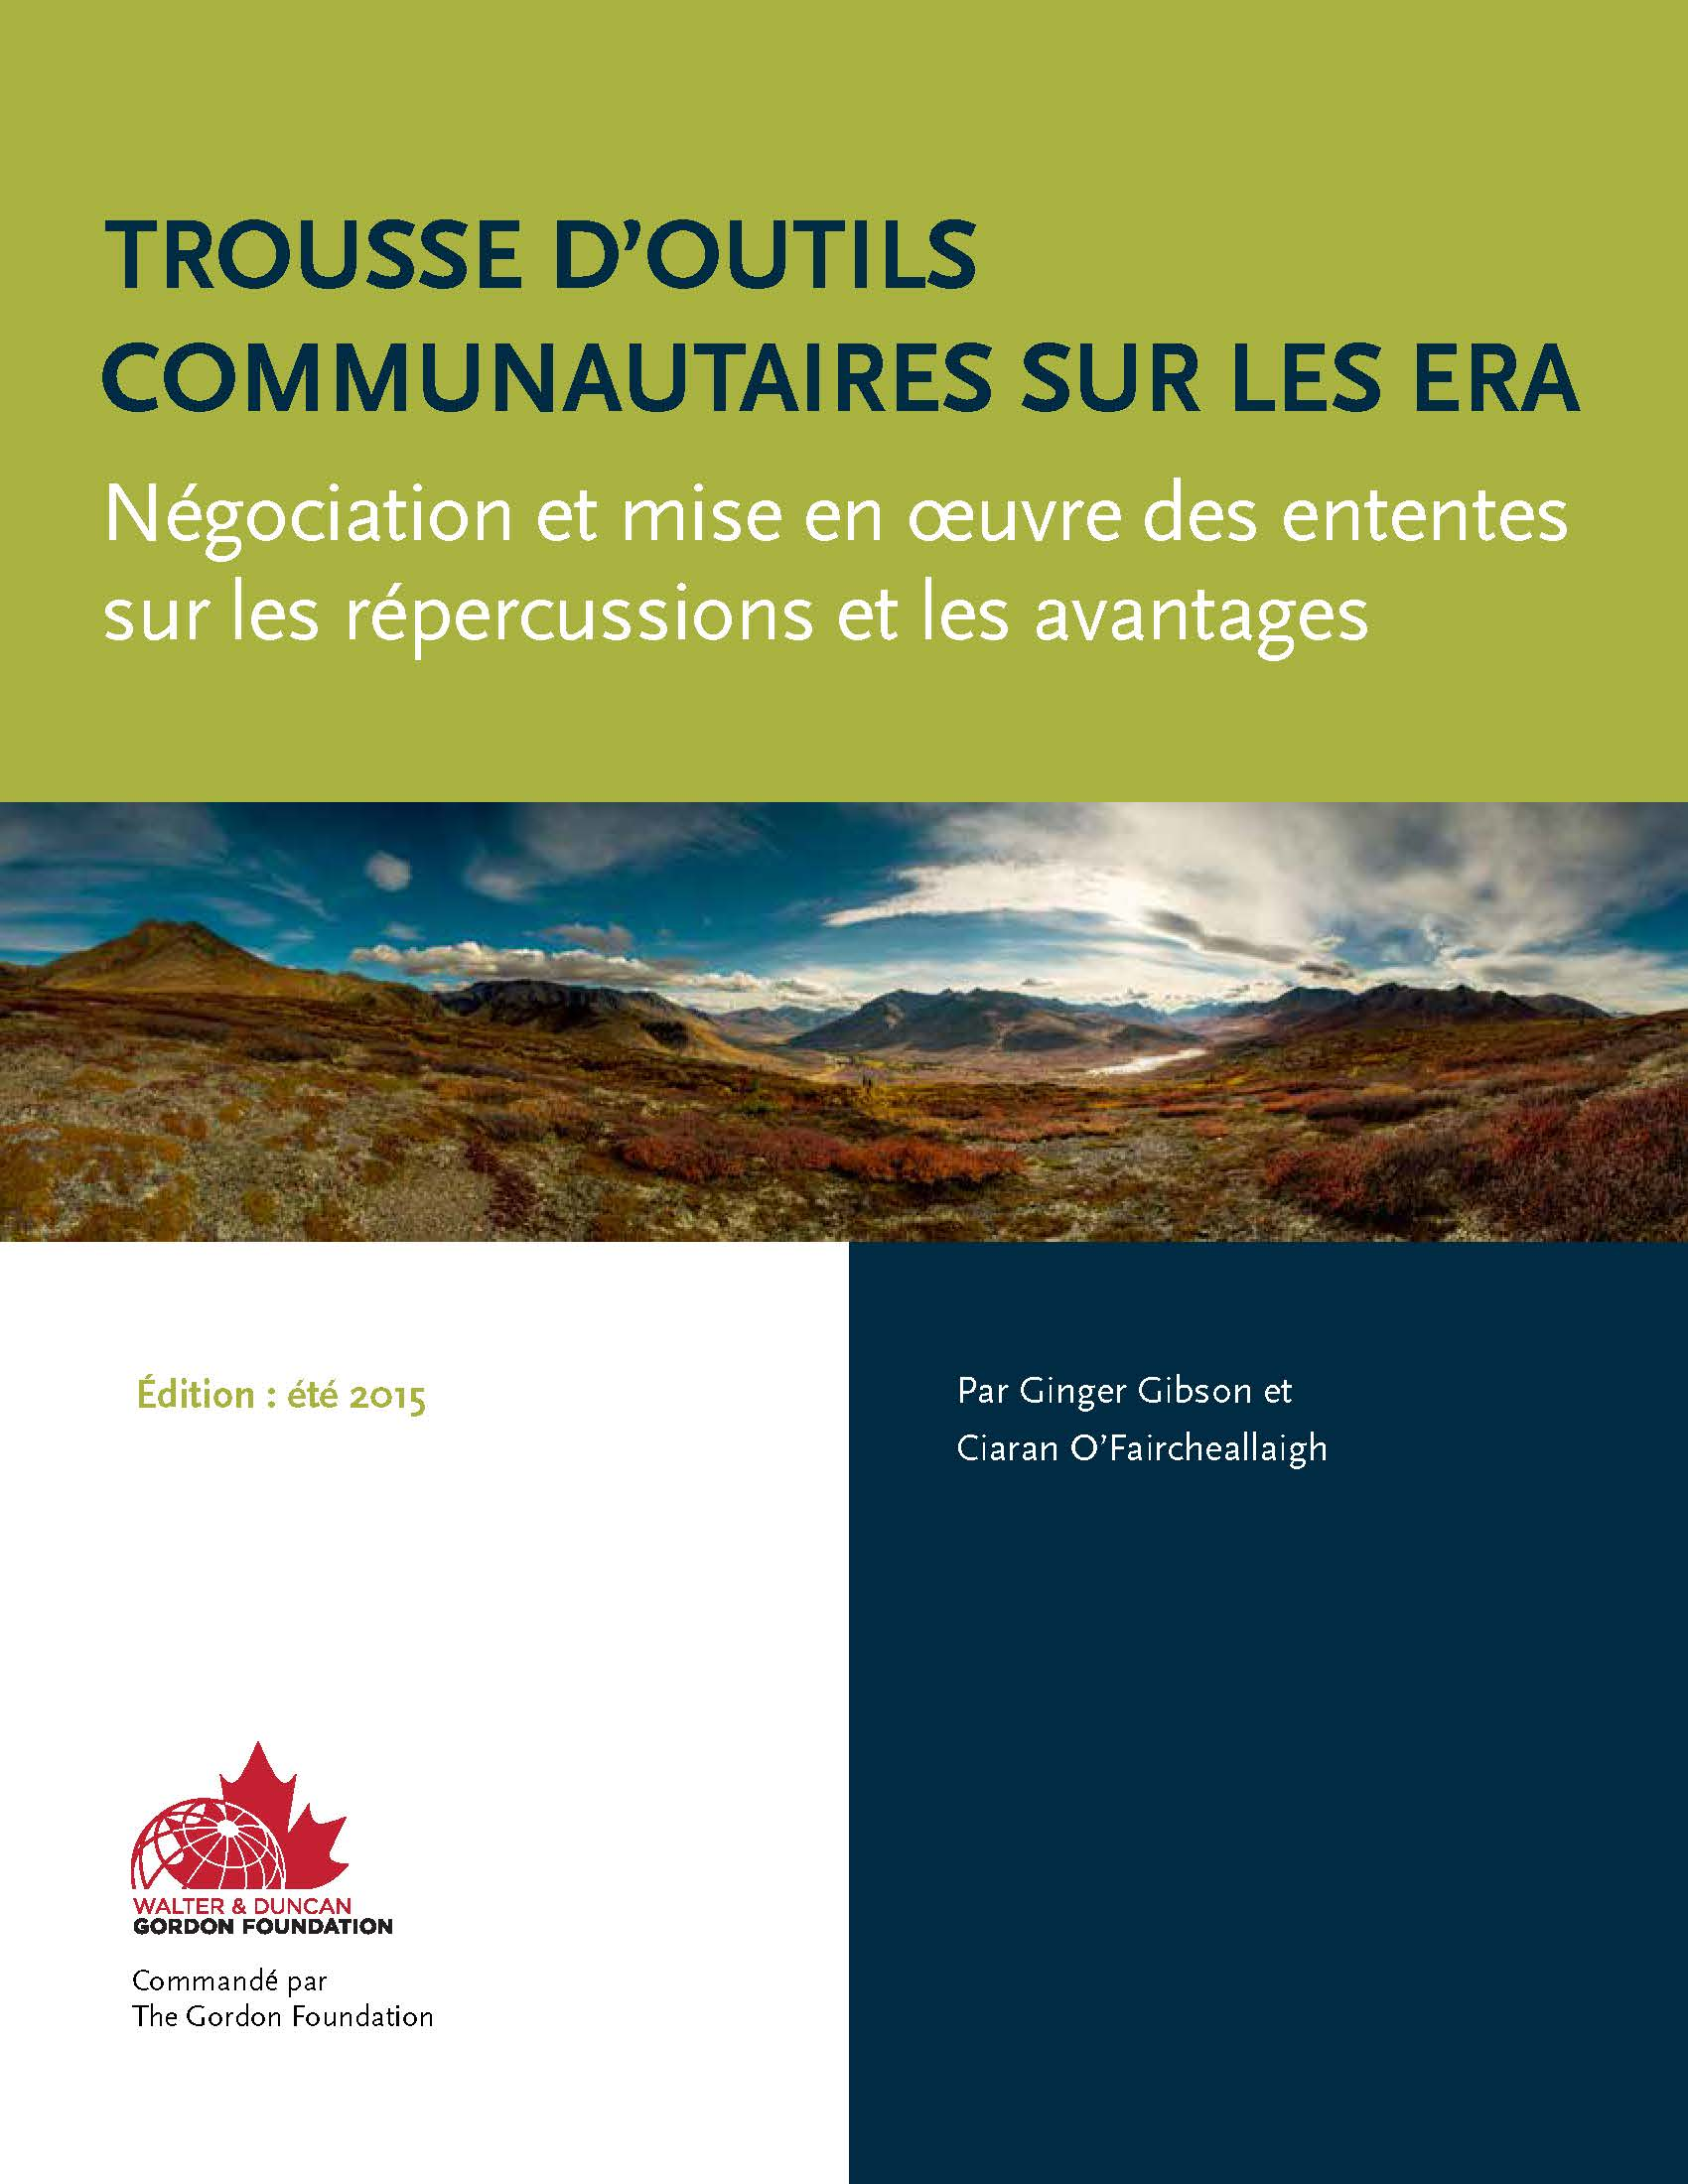 IBA_toolkit_French_2015_web_COVERONLY